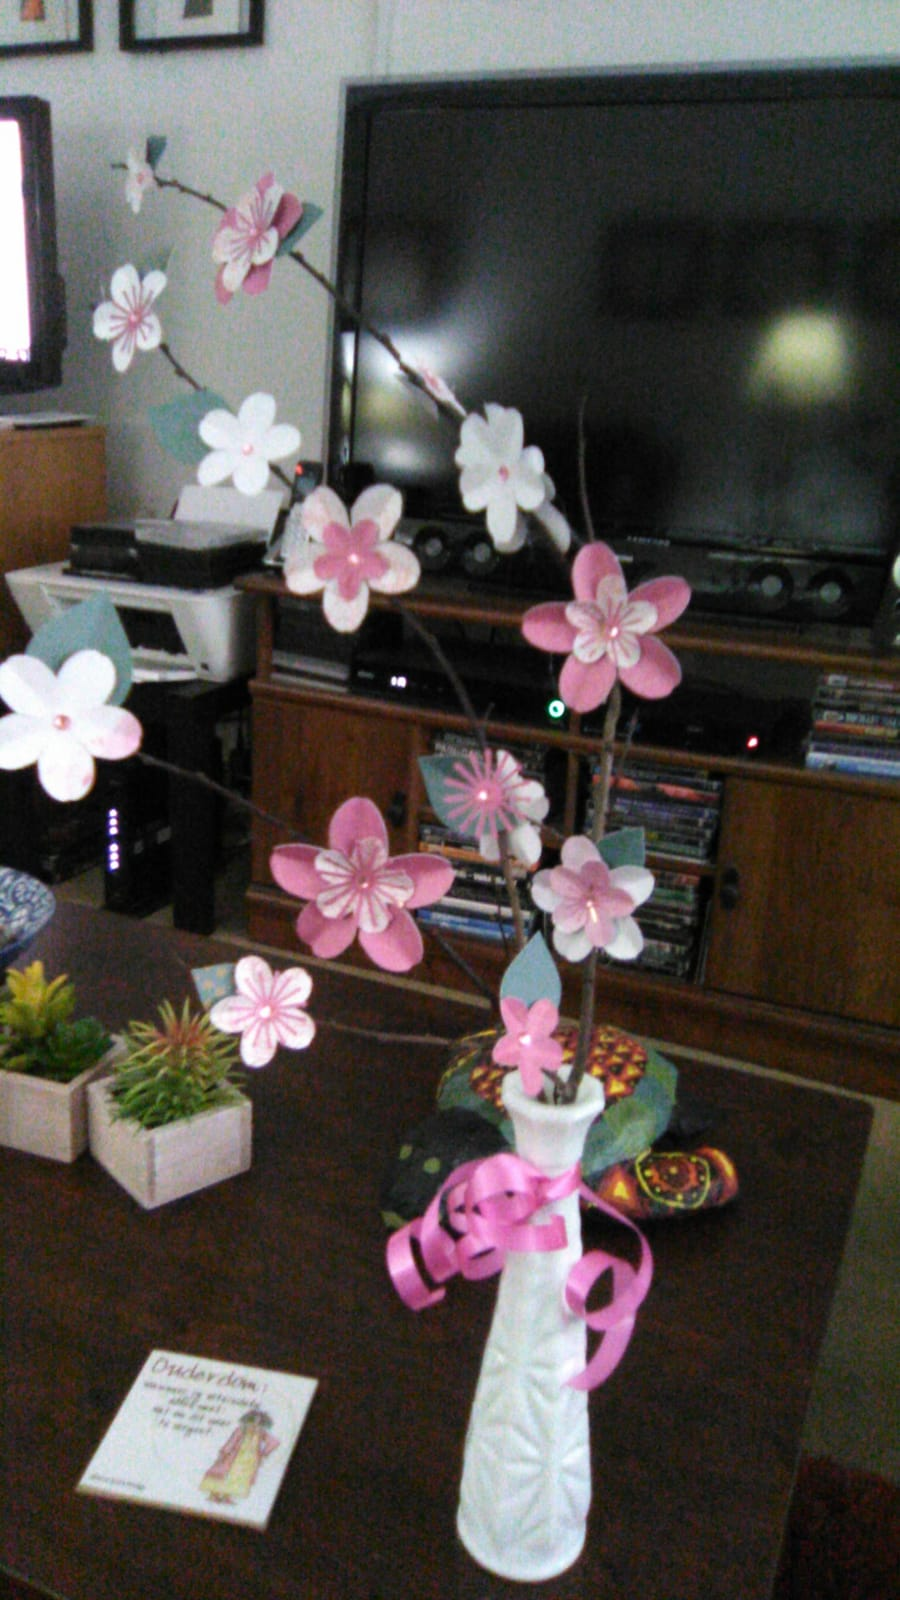 Flowers that I printed and nana constructed with the cricut machine. It looks so cute